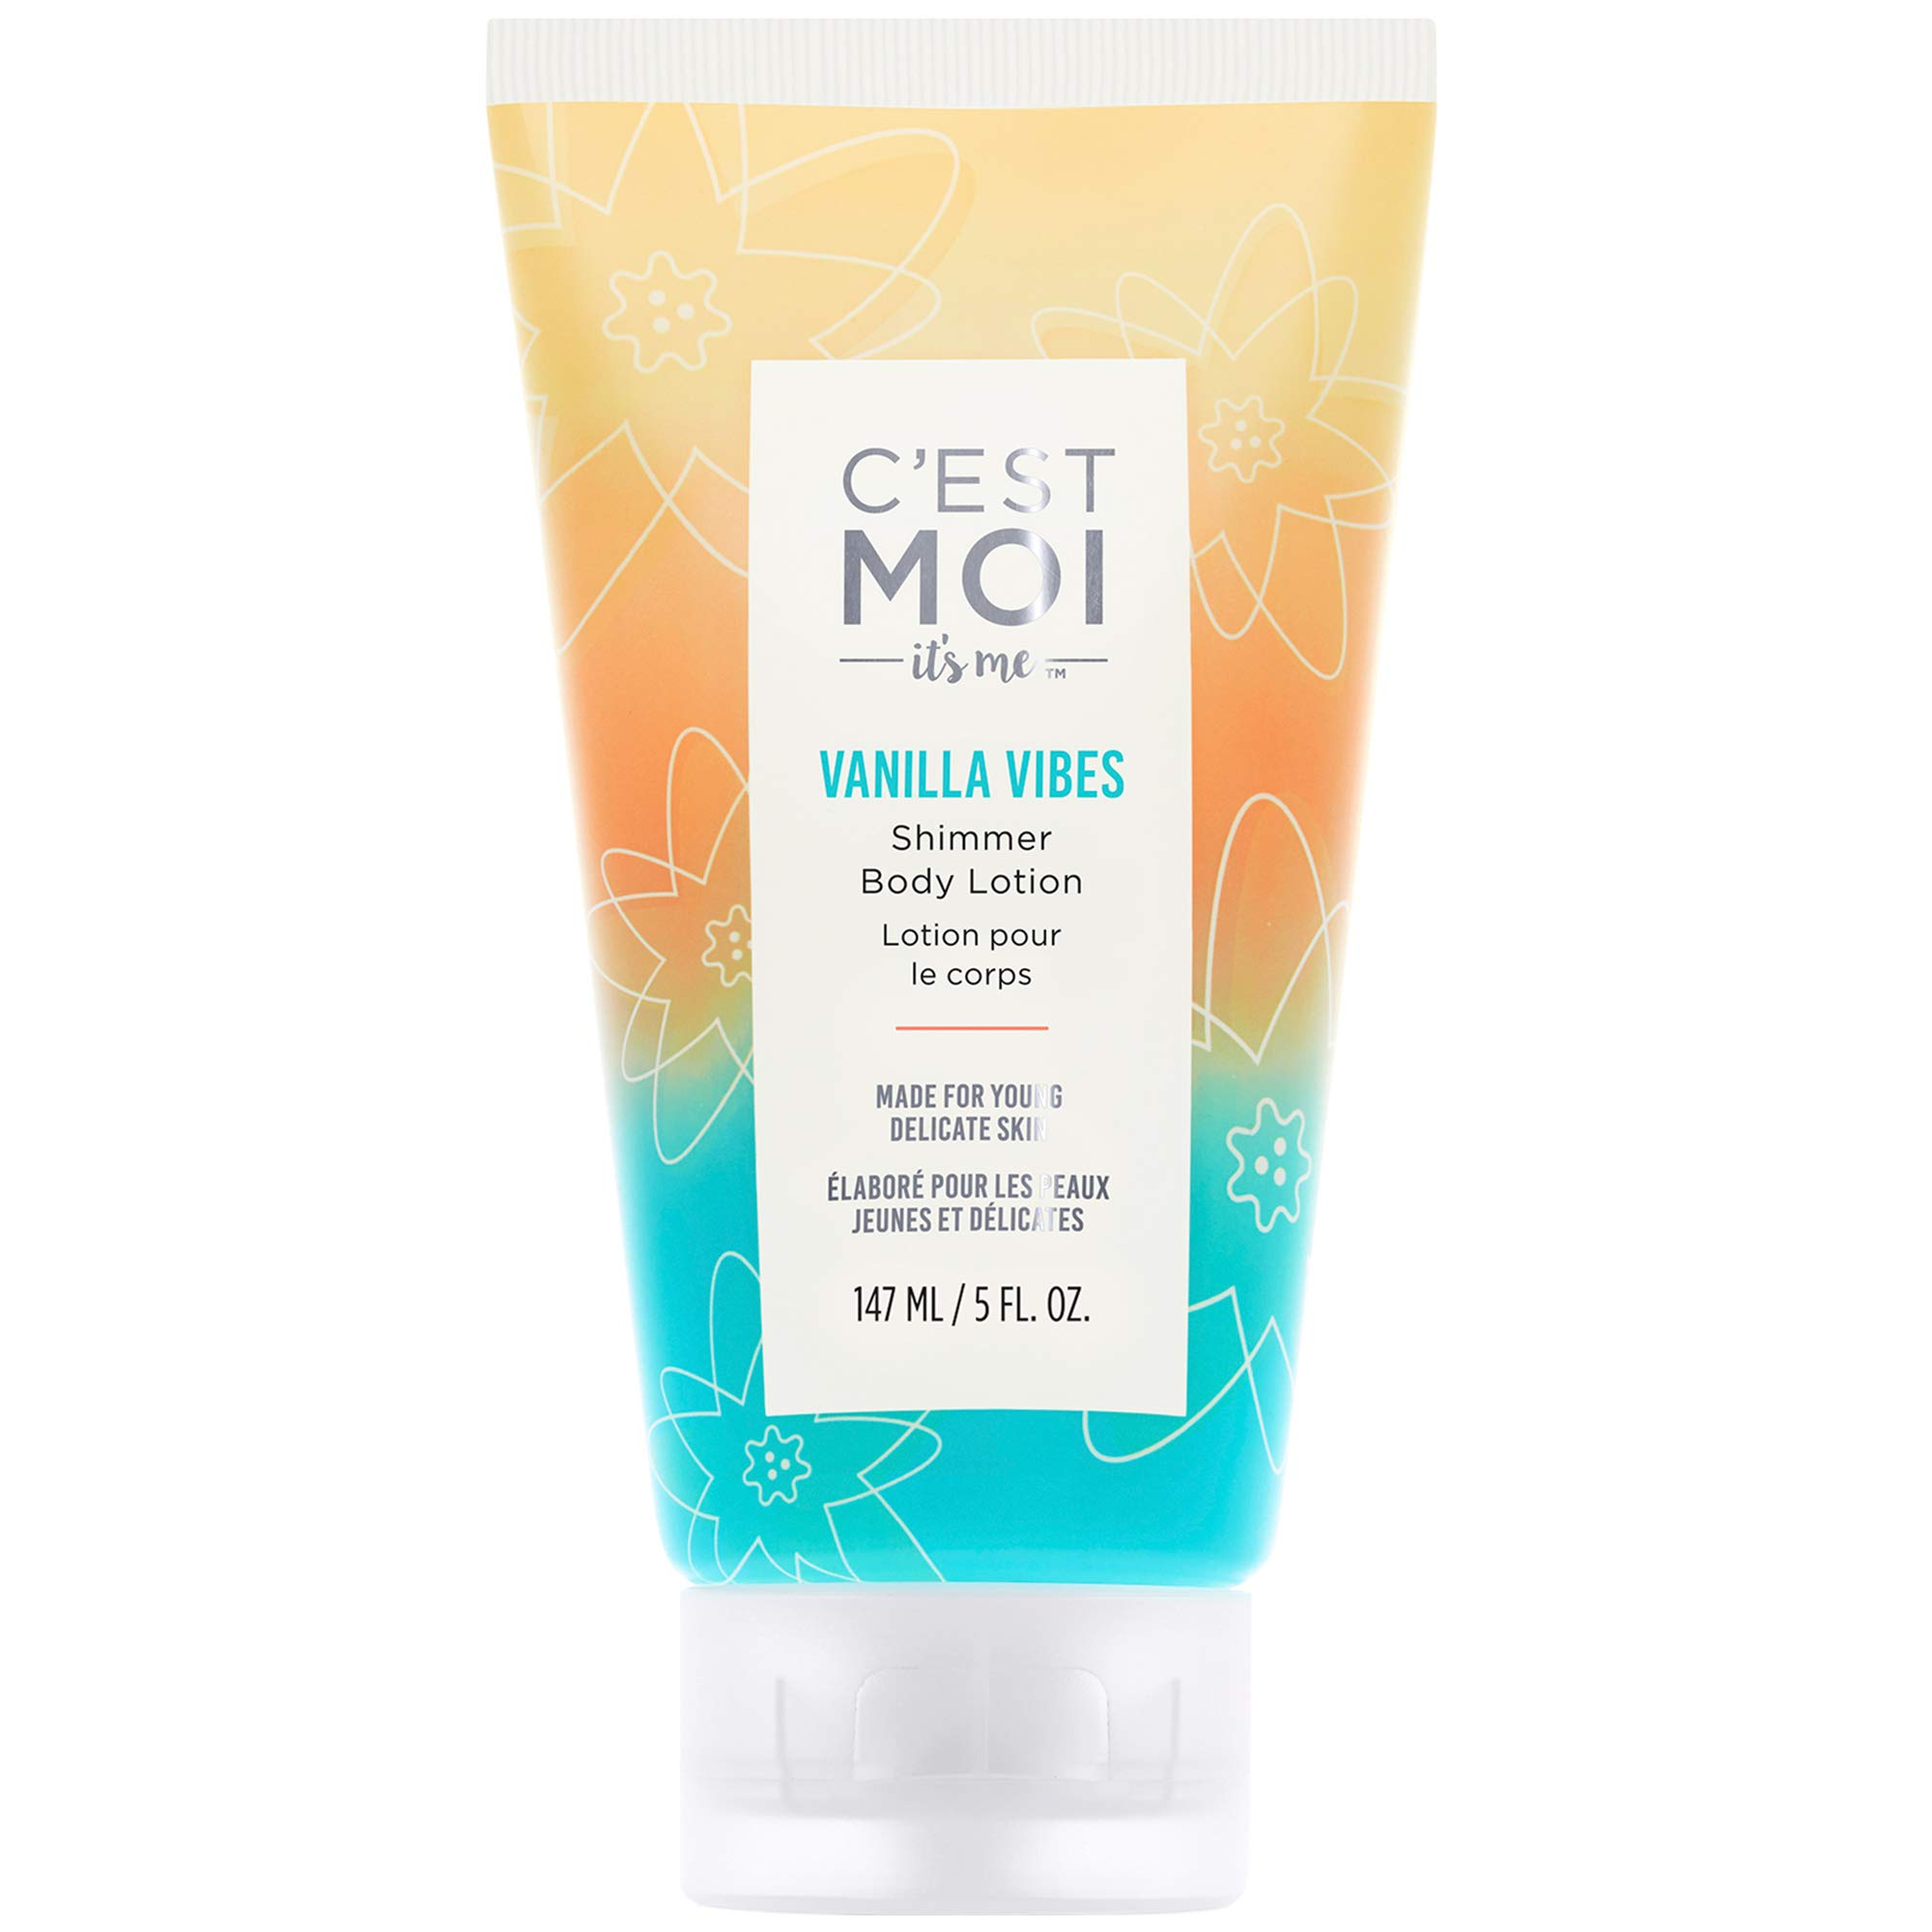 C'est Moi Vanilla Vibes Shimmer Body Lotion   Organic Shea Butter, Avocado Oil, Flaxseed Oil, Aloe, Hydrating, Provides Subtle Natural Glow, Moisturizer, Hydrating, Gentle, 5 fl oz by C'est Moi